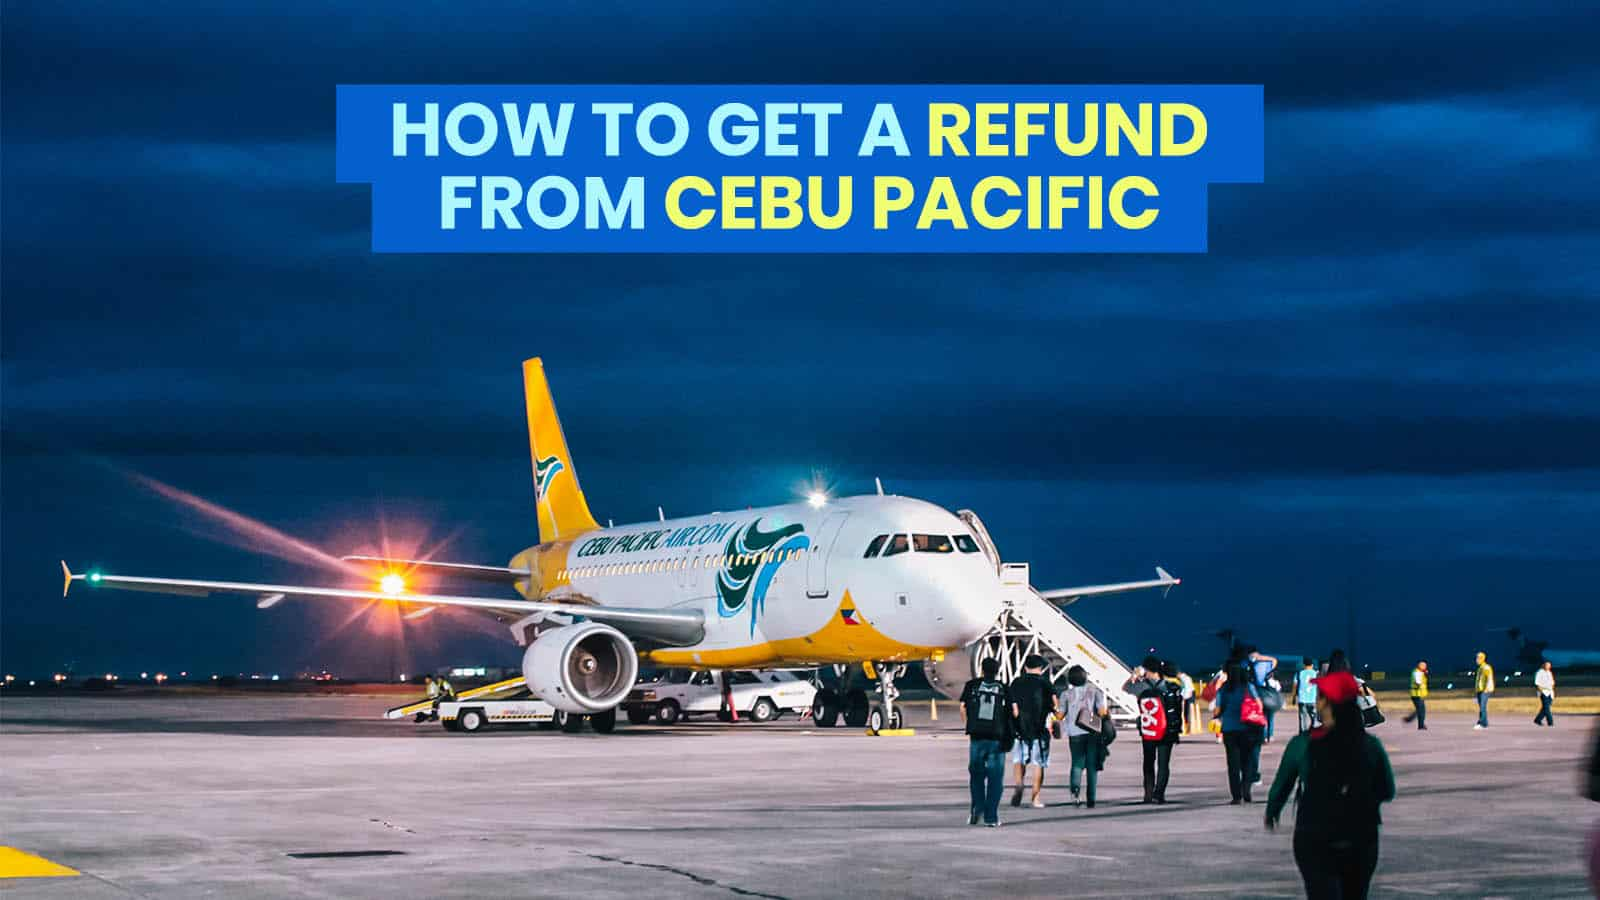 CEBU PACIFIC: How to Get a REFUND for Canceled or Rescheduled Flights